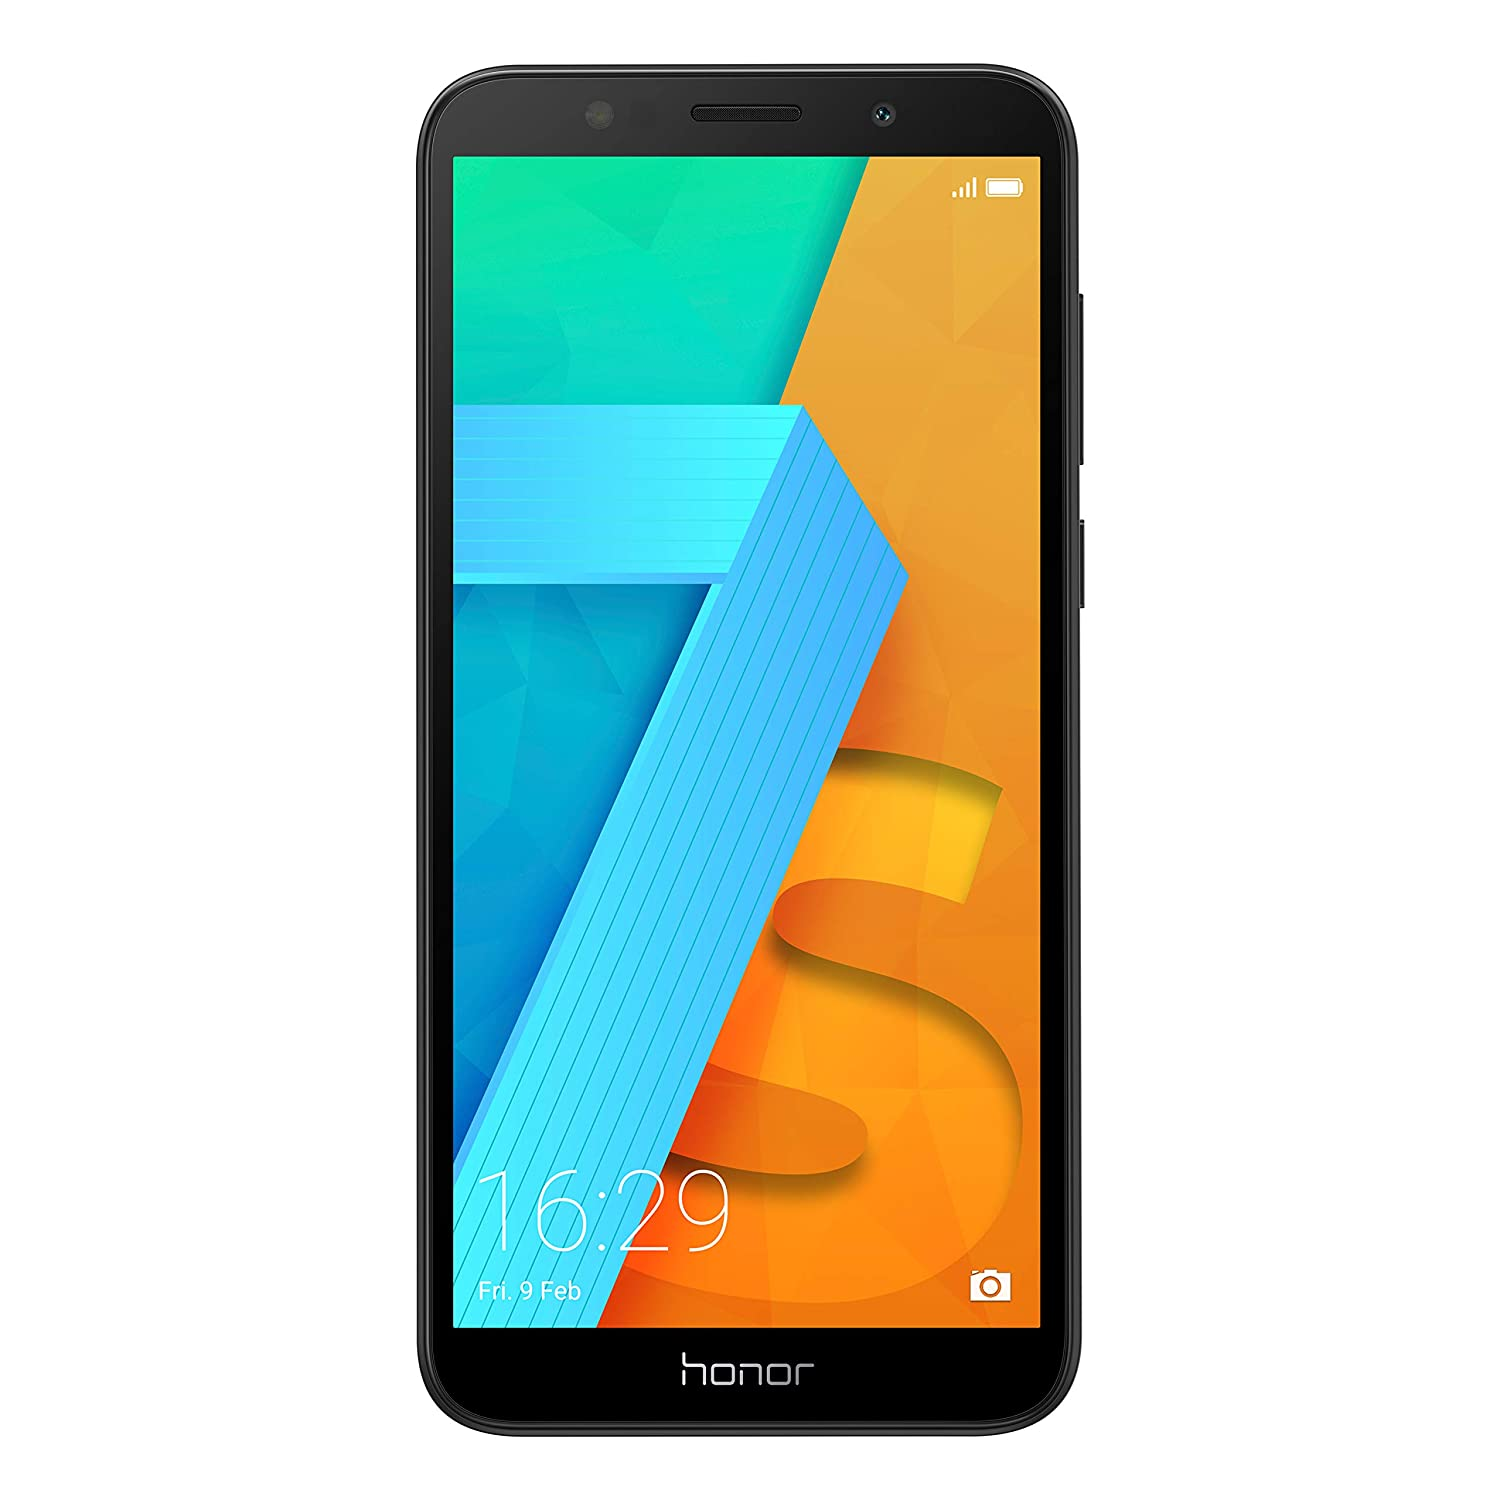 85023b1a38a326 Honor 7S Dual SIM - 16 GB storage - UK Official Device  Amazon.co.uk   Electronics